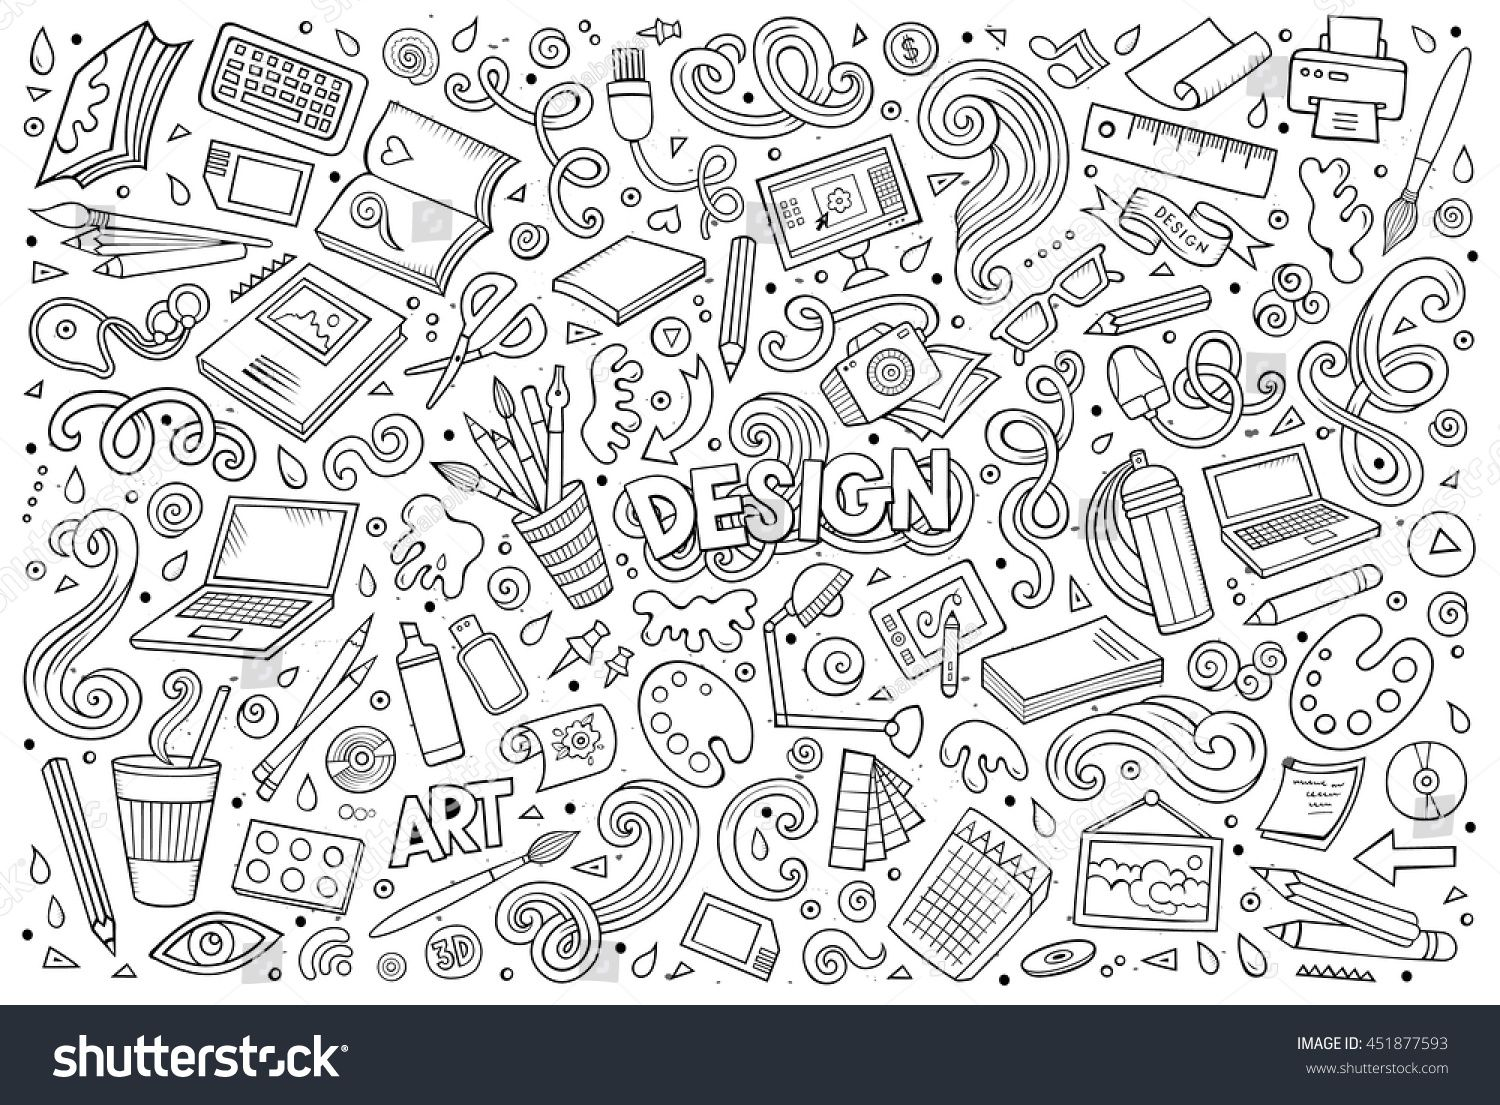 Line Art Vector Hand Drawn Doodle Cartoon Set Of Design Theme Items Objects And Symbols Line Art Vector Doodle Cartoon How To Draw Hands